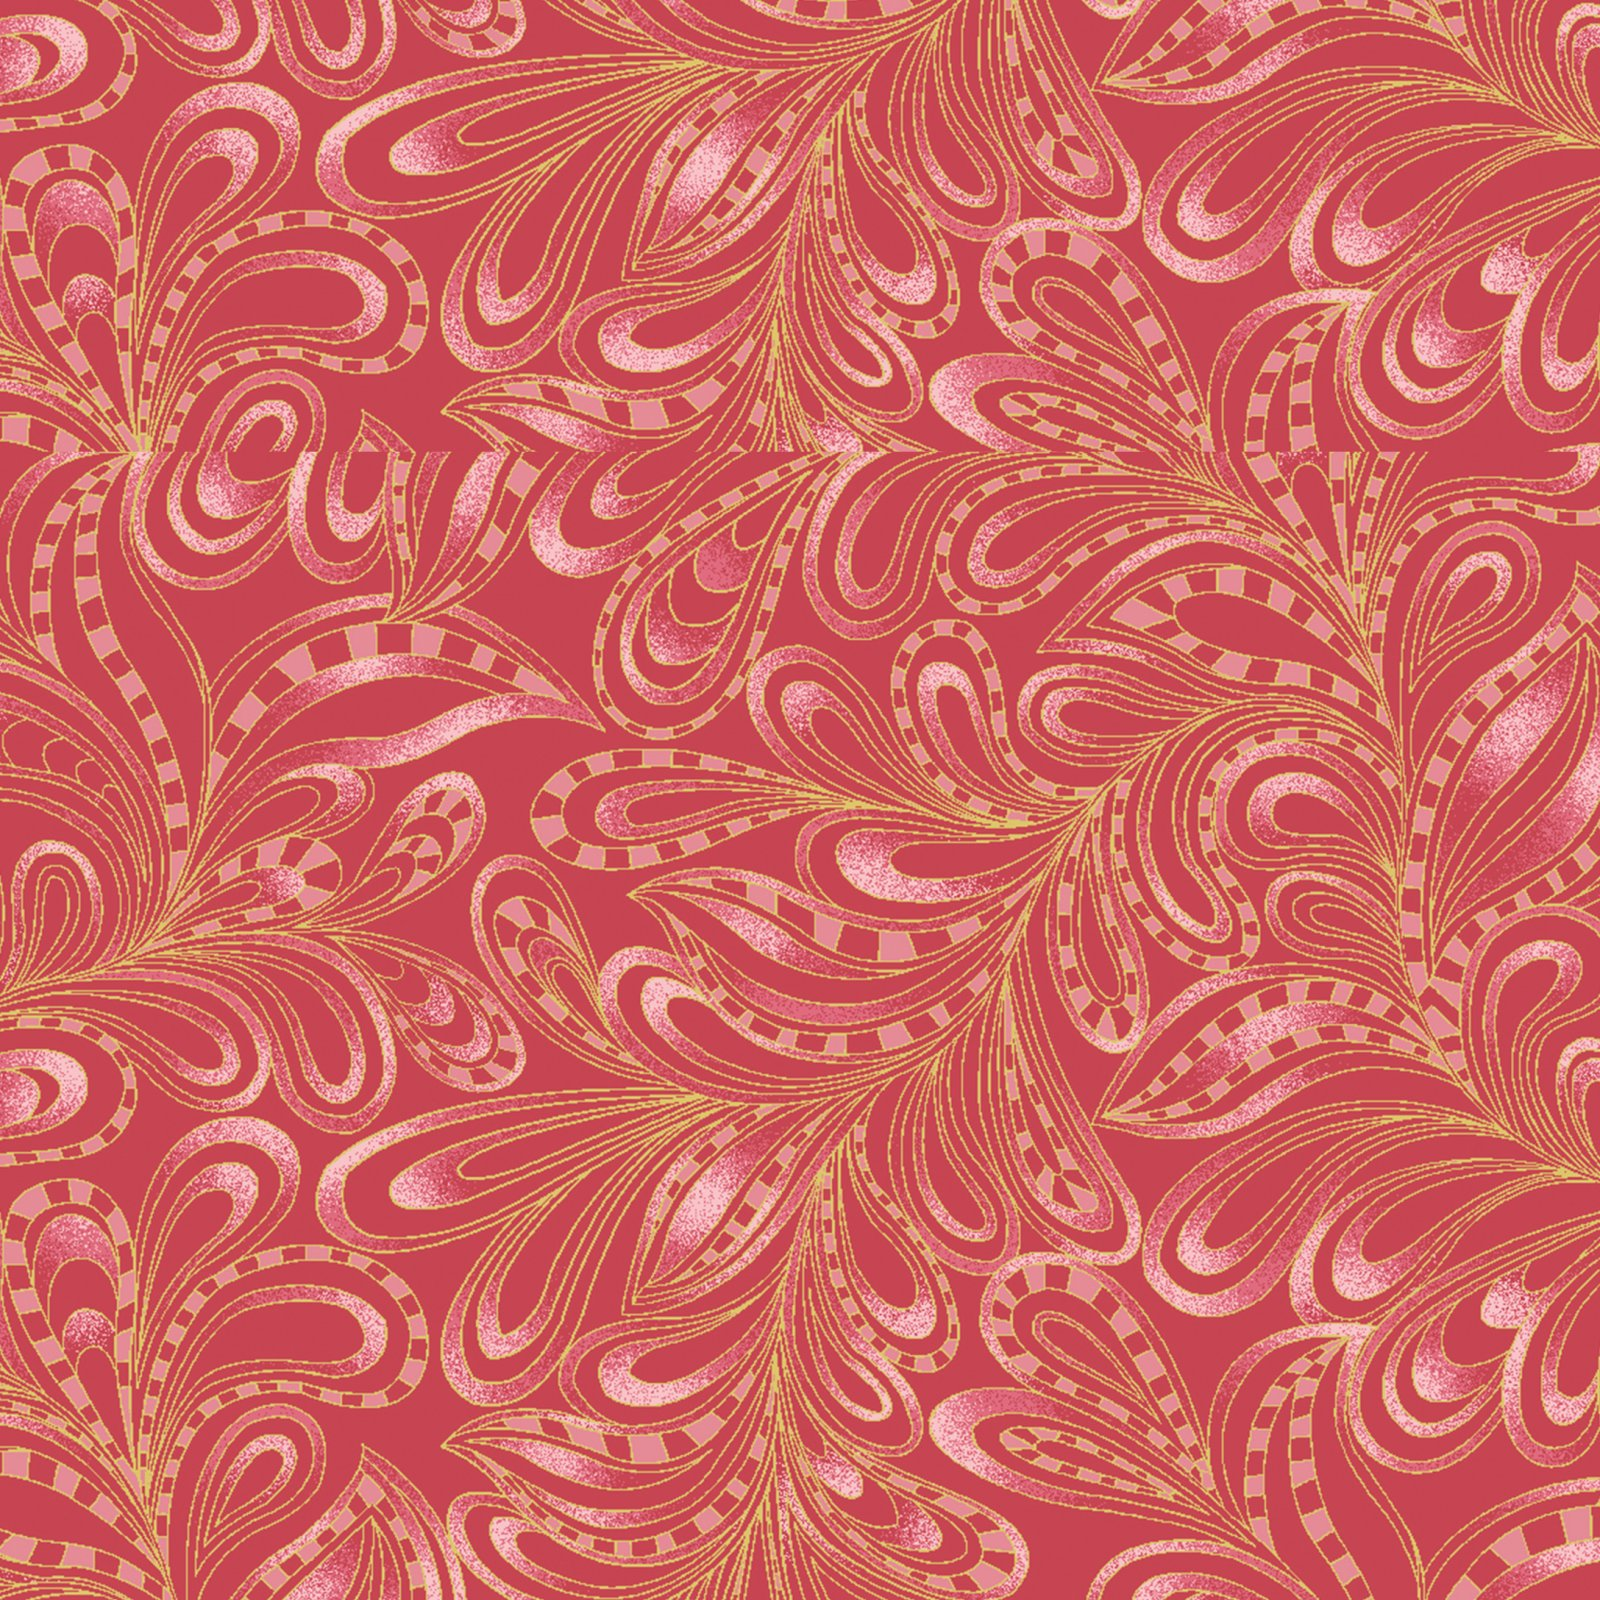 Cat-I-Tude 2 7555M-10 Featherly Paisley by Ann Lauer for Benartex